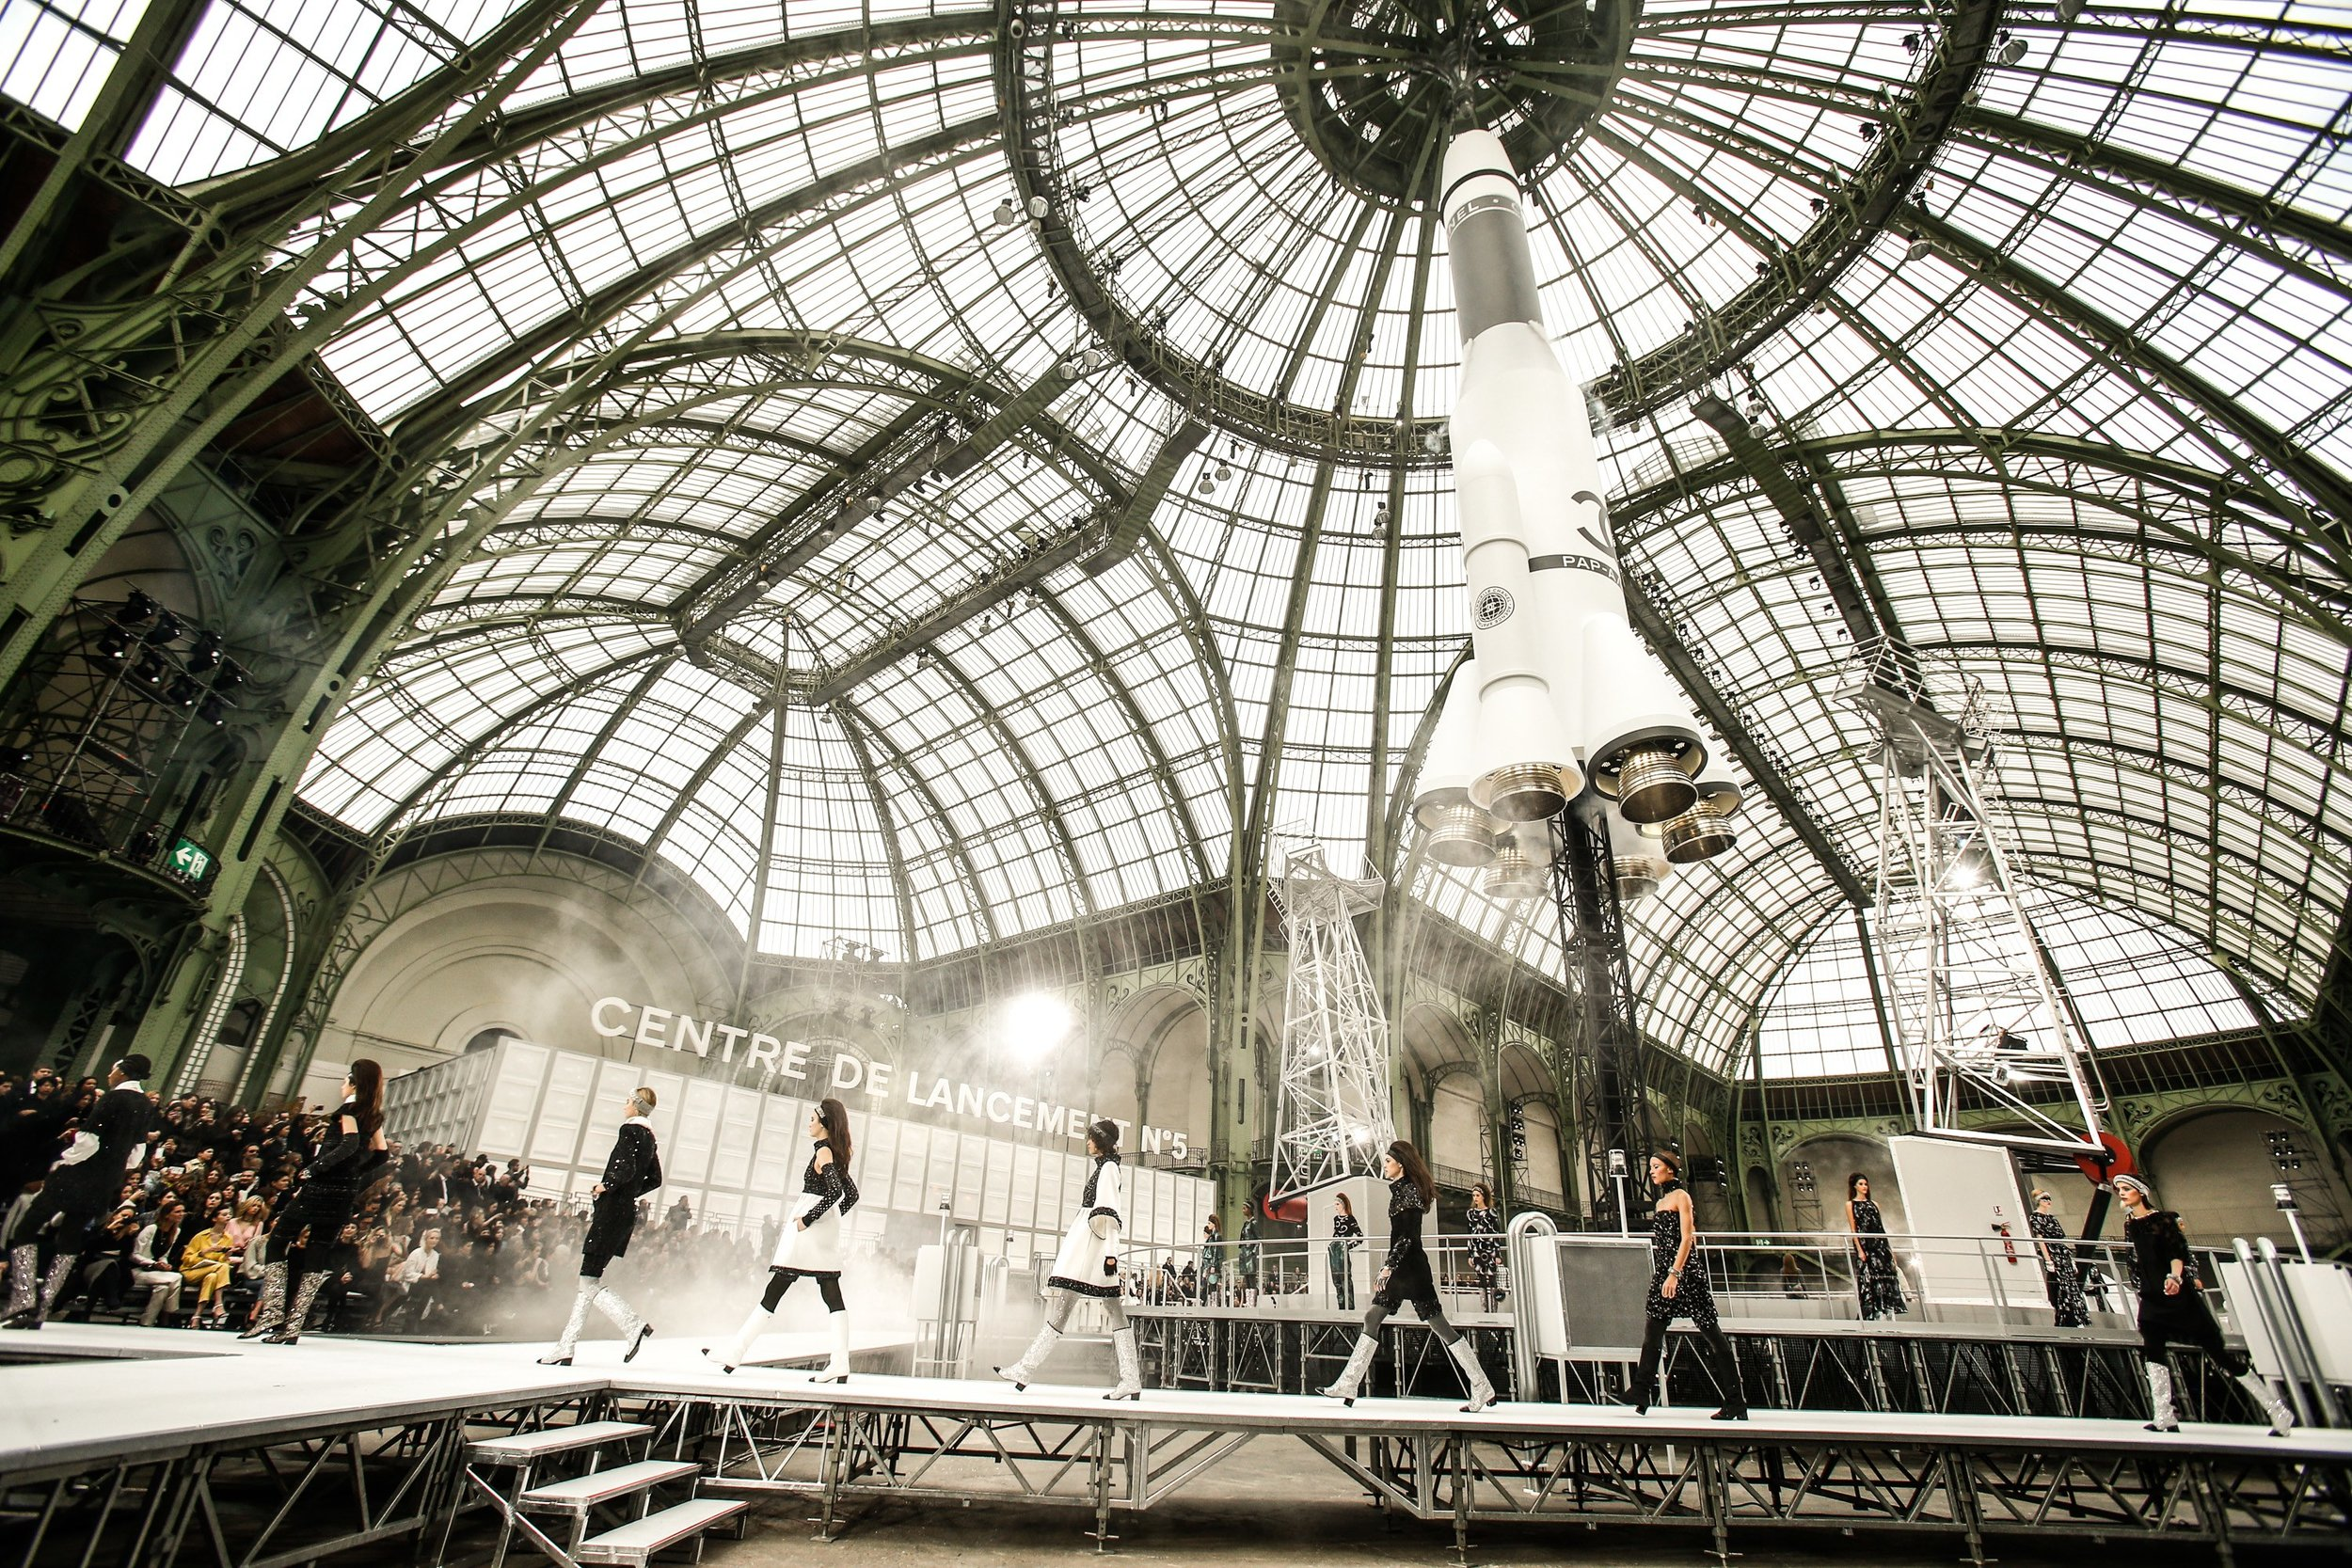 A life-size rocket launching in the Grand Palais. Photo: Alessandro Garofalo /  indigital.tv .